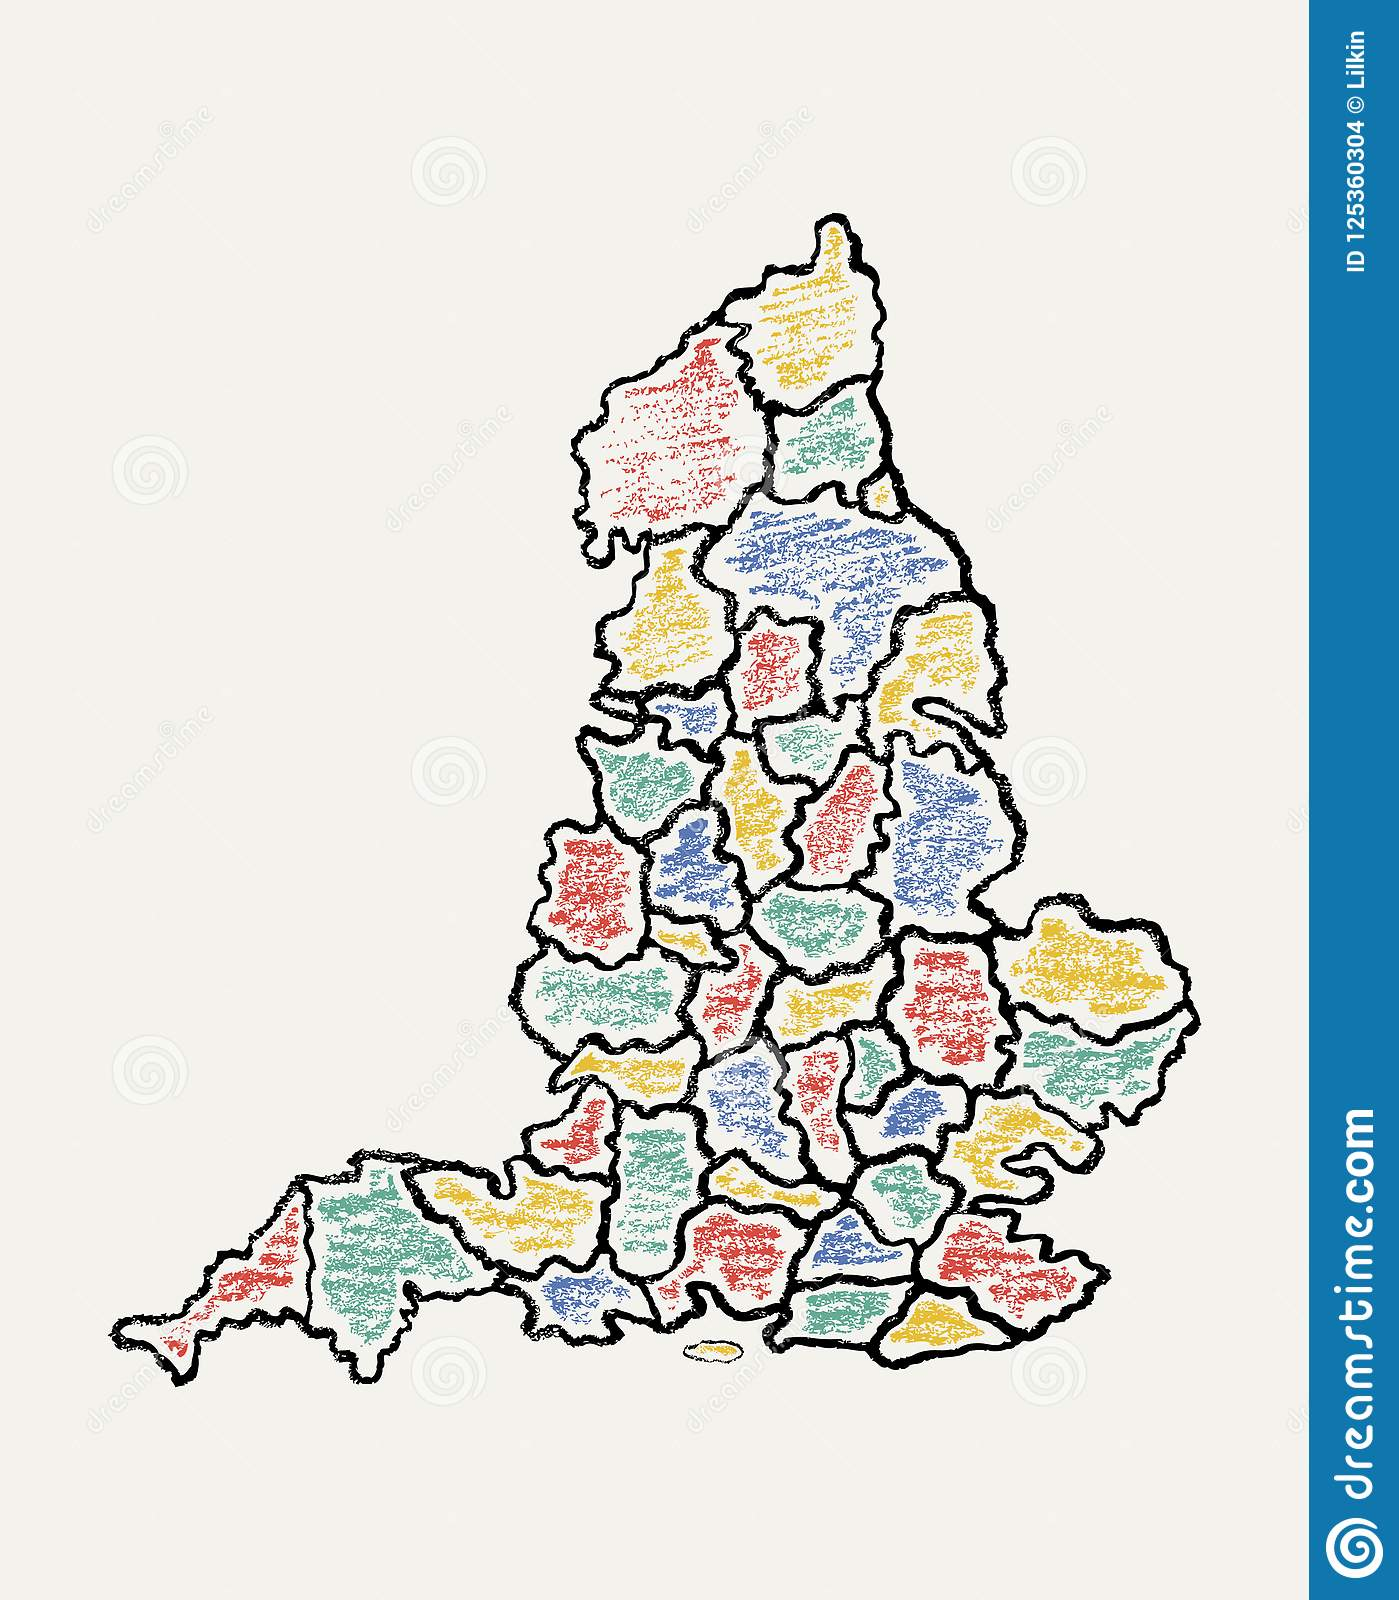 Full Map Of England.Hand Drawn Map Of England Stock Vector Illustration Of Detailed